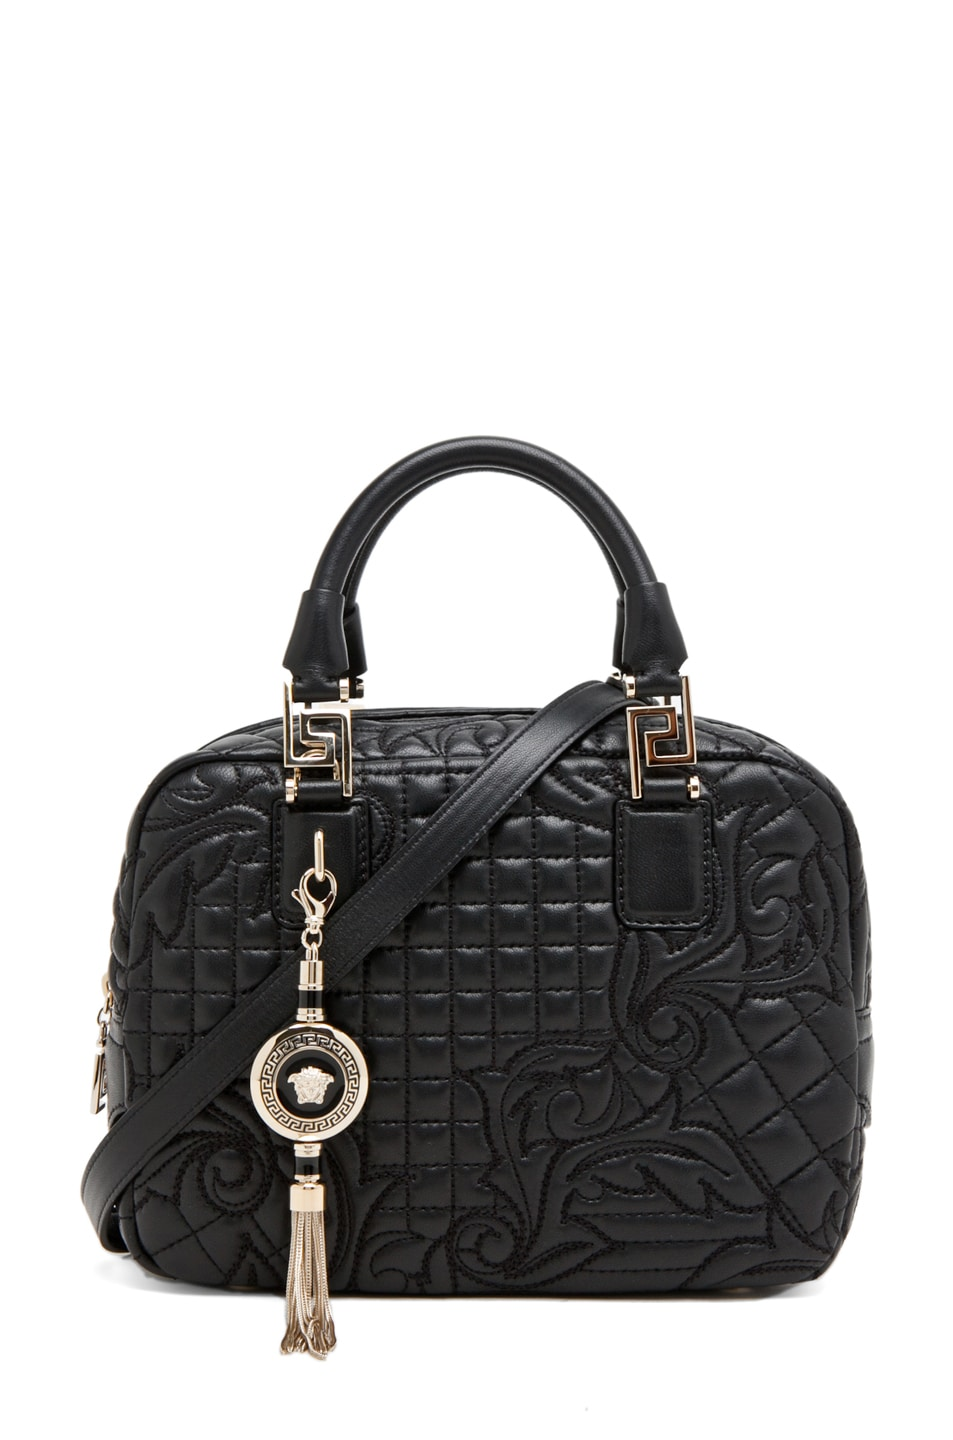 Image 1 of VERSACE Satchel in Black